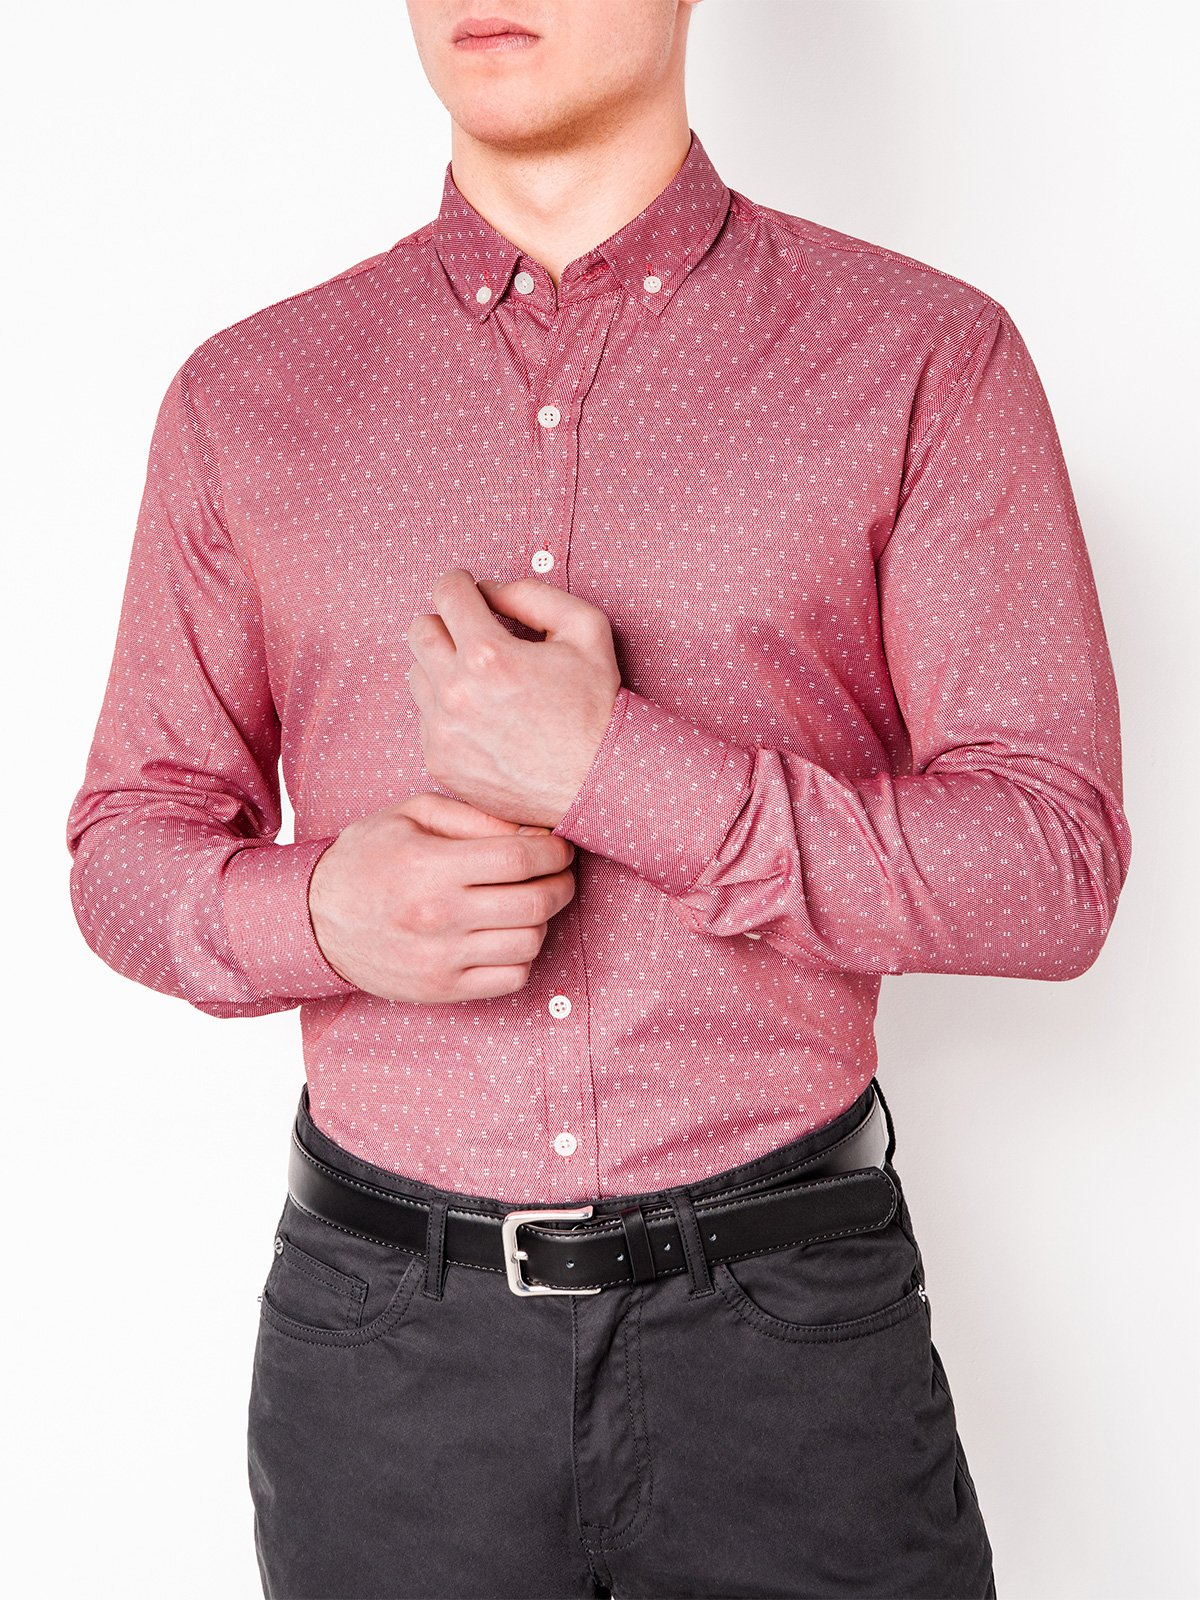 Ombre Clothing MEN'S ELEGANT SHIRT WITH LONG SLEEVES K395